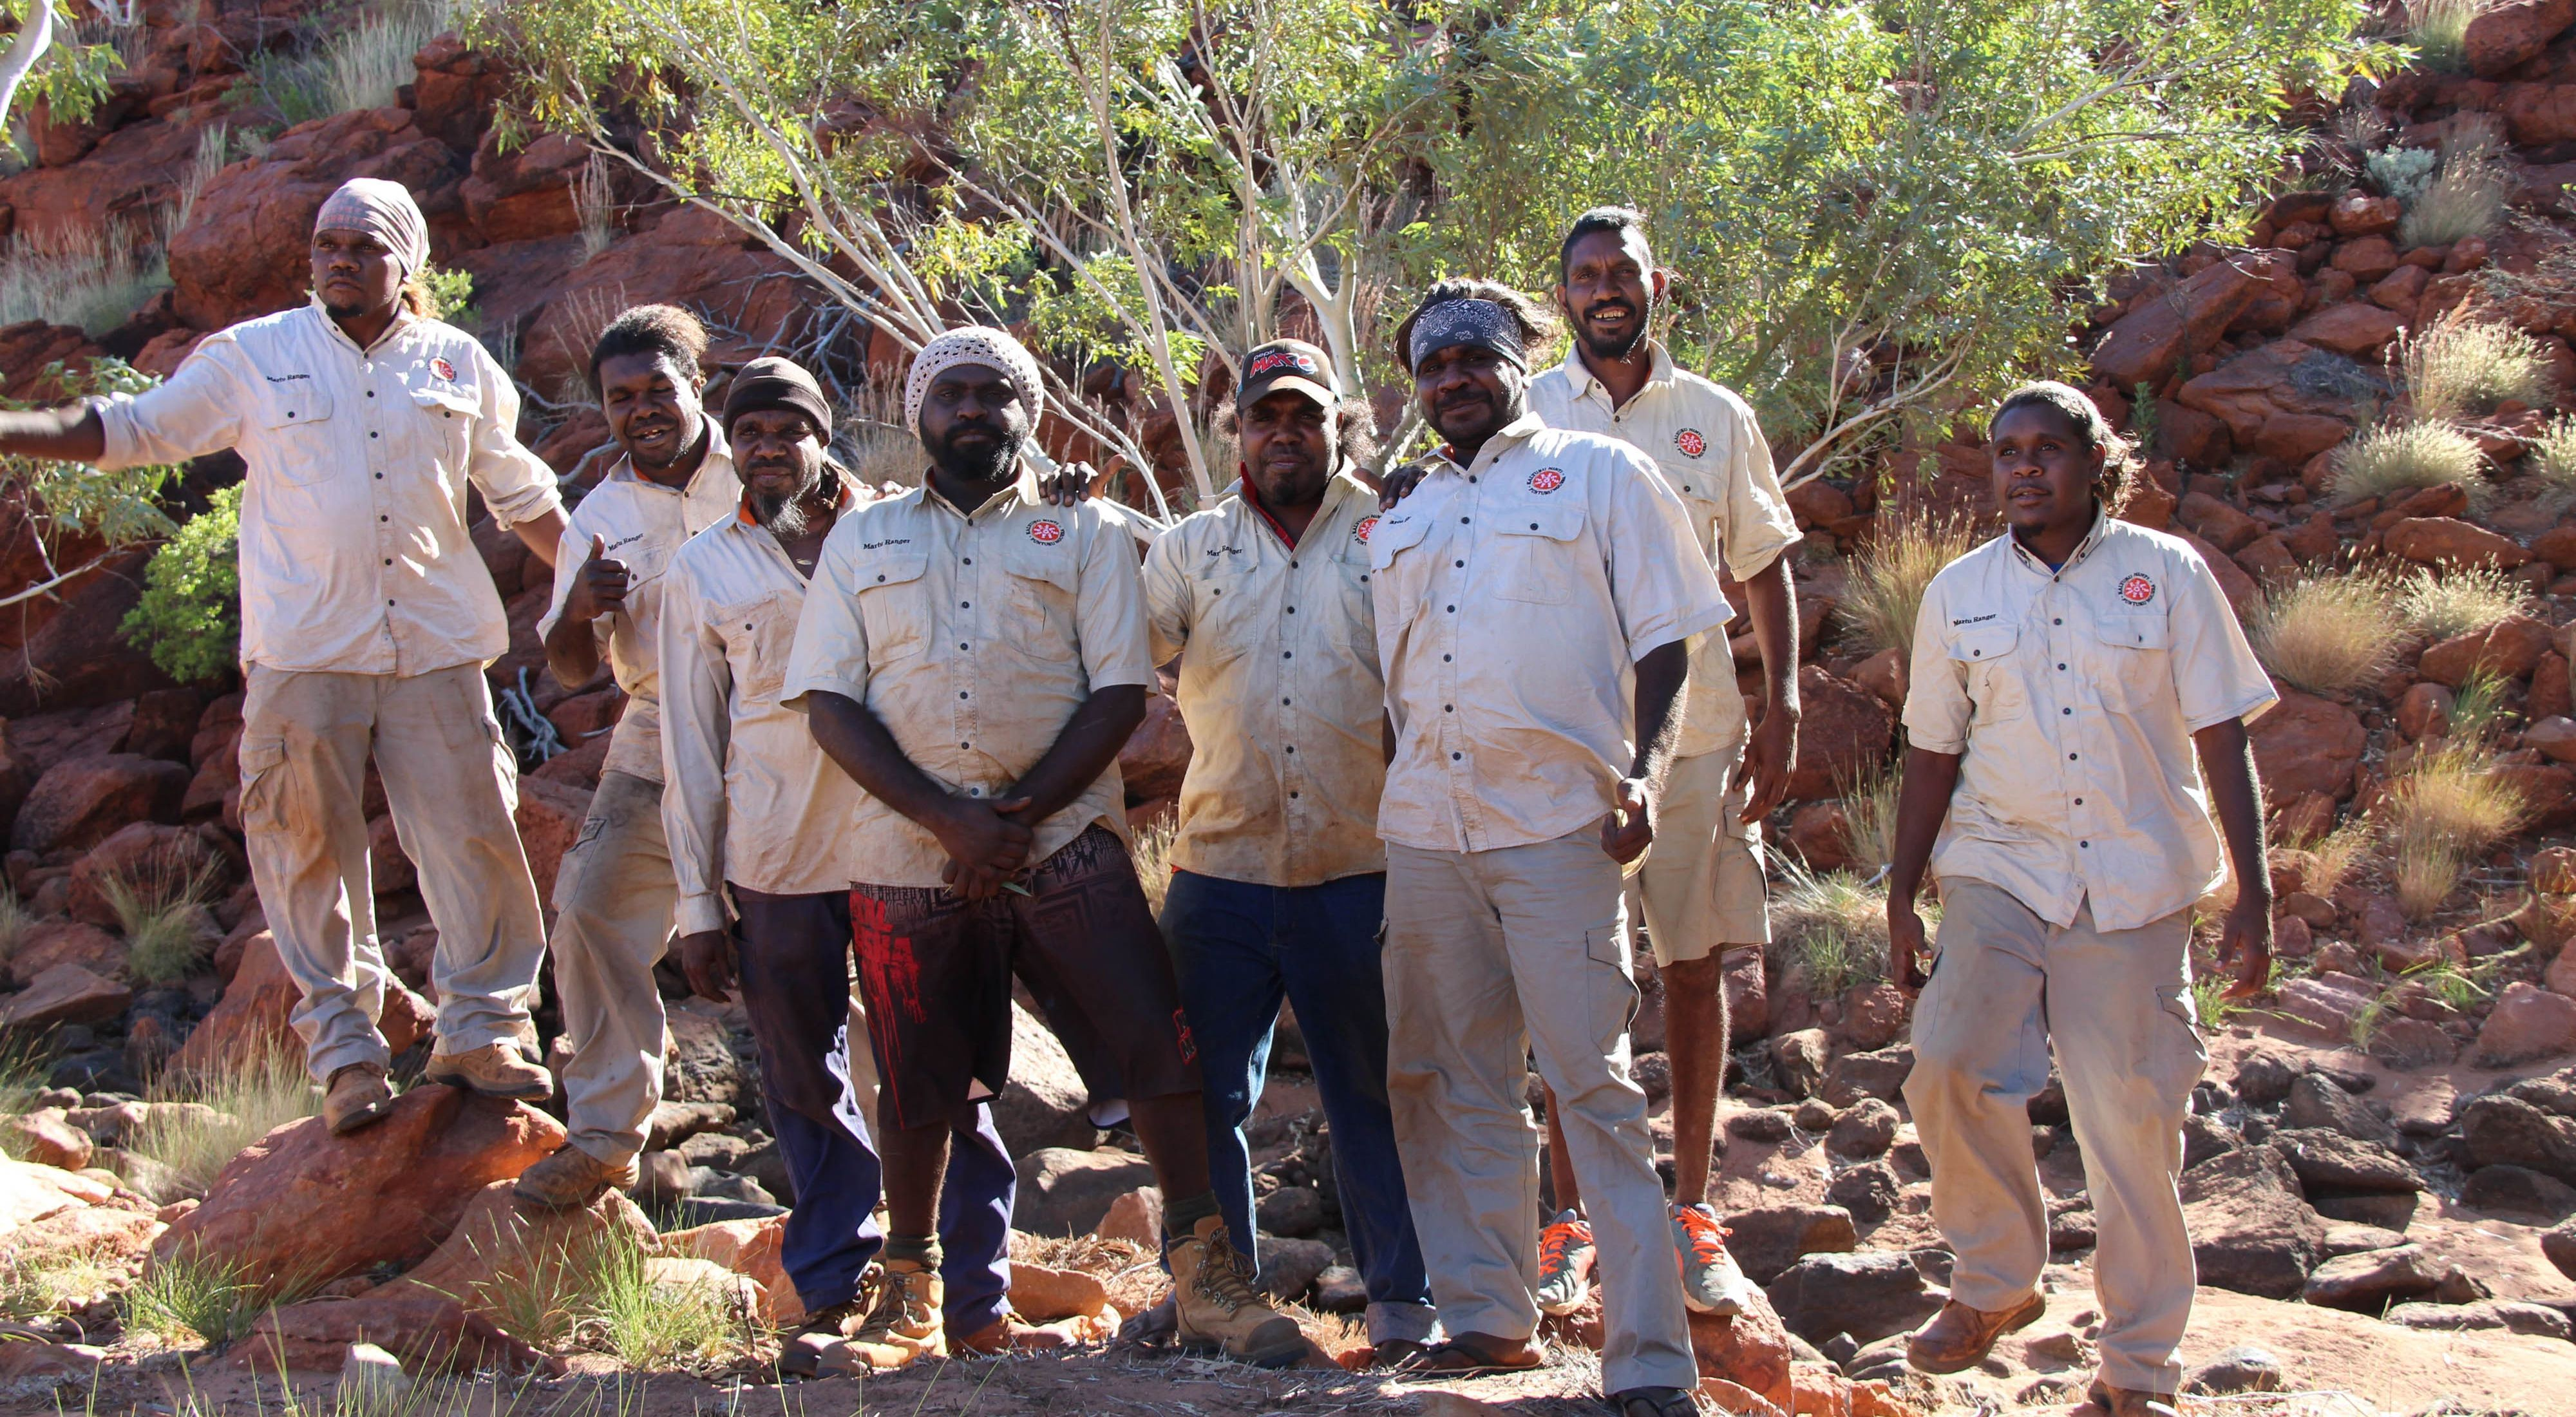 KJ Rangers work in Martu Country, the Australian outback to help keep Country healthy for people and nature